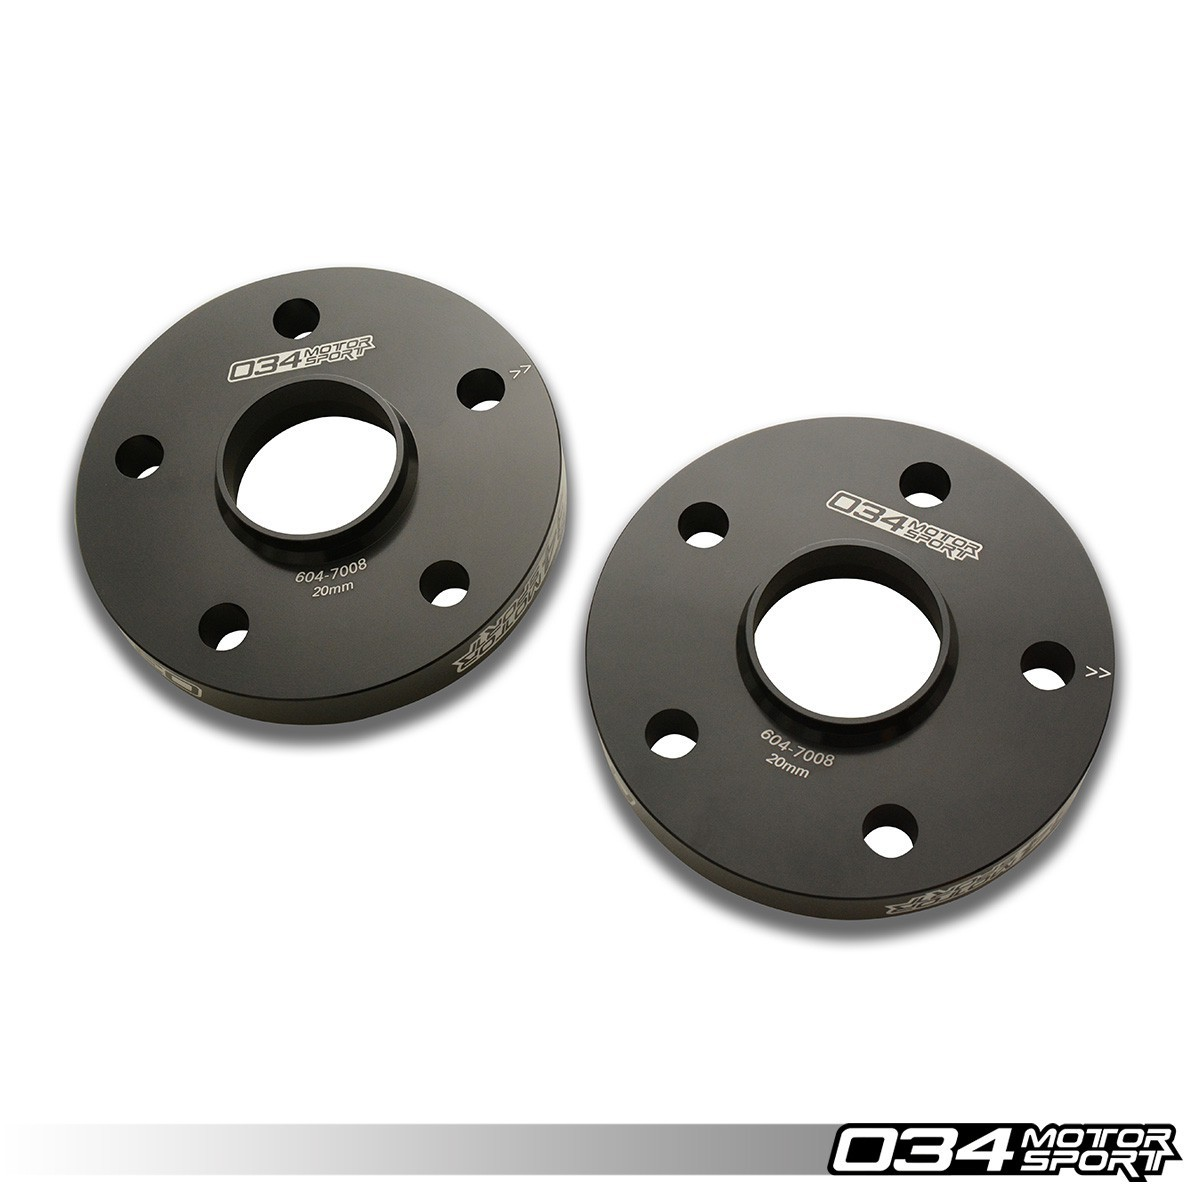 034 Wheel Spacer Pair, 5X112, 20mm Thick, 57.1mm Hub